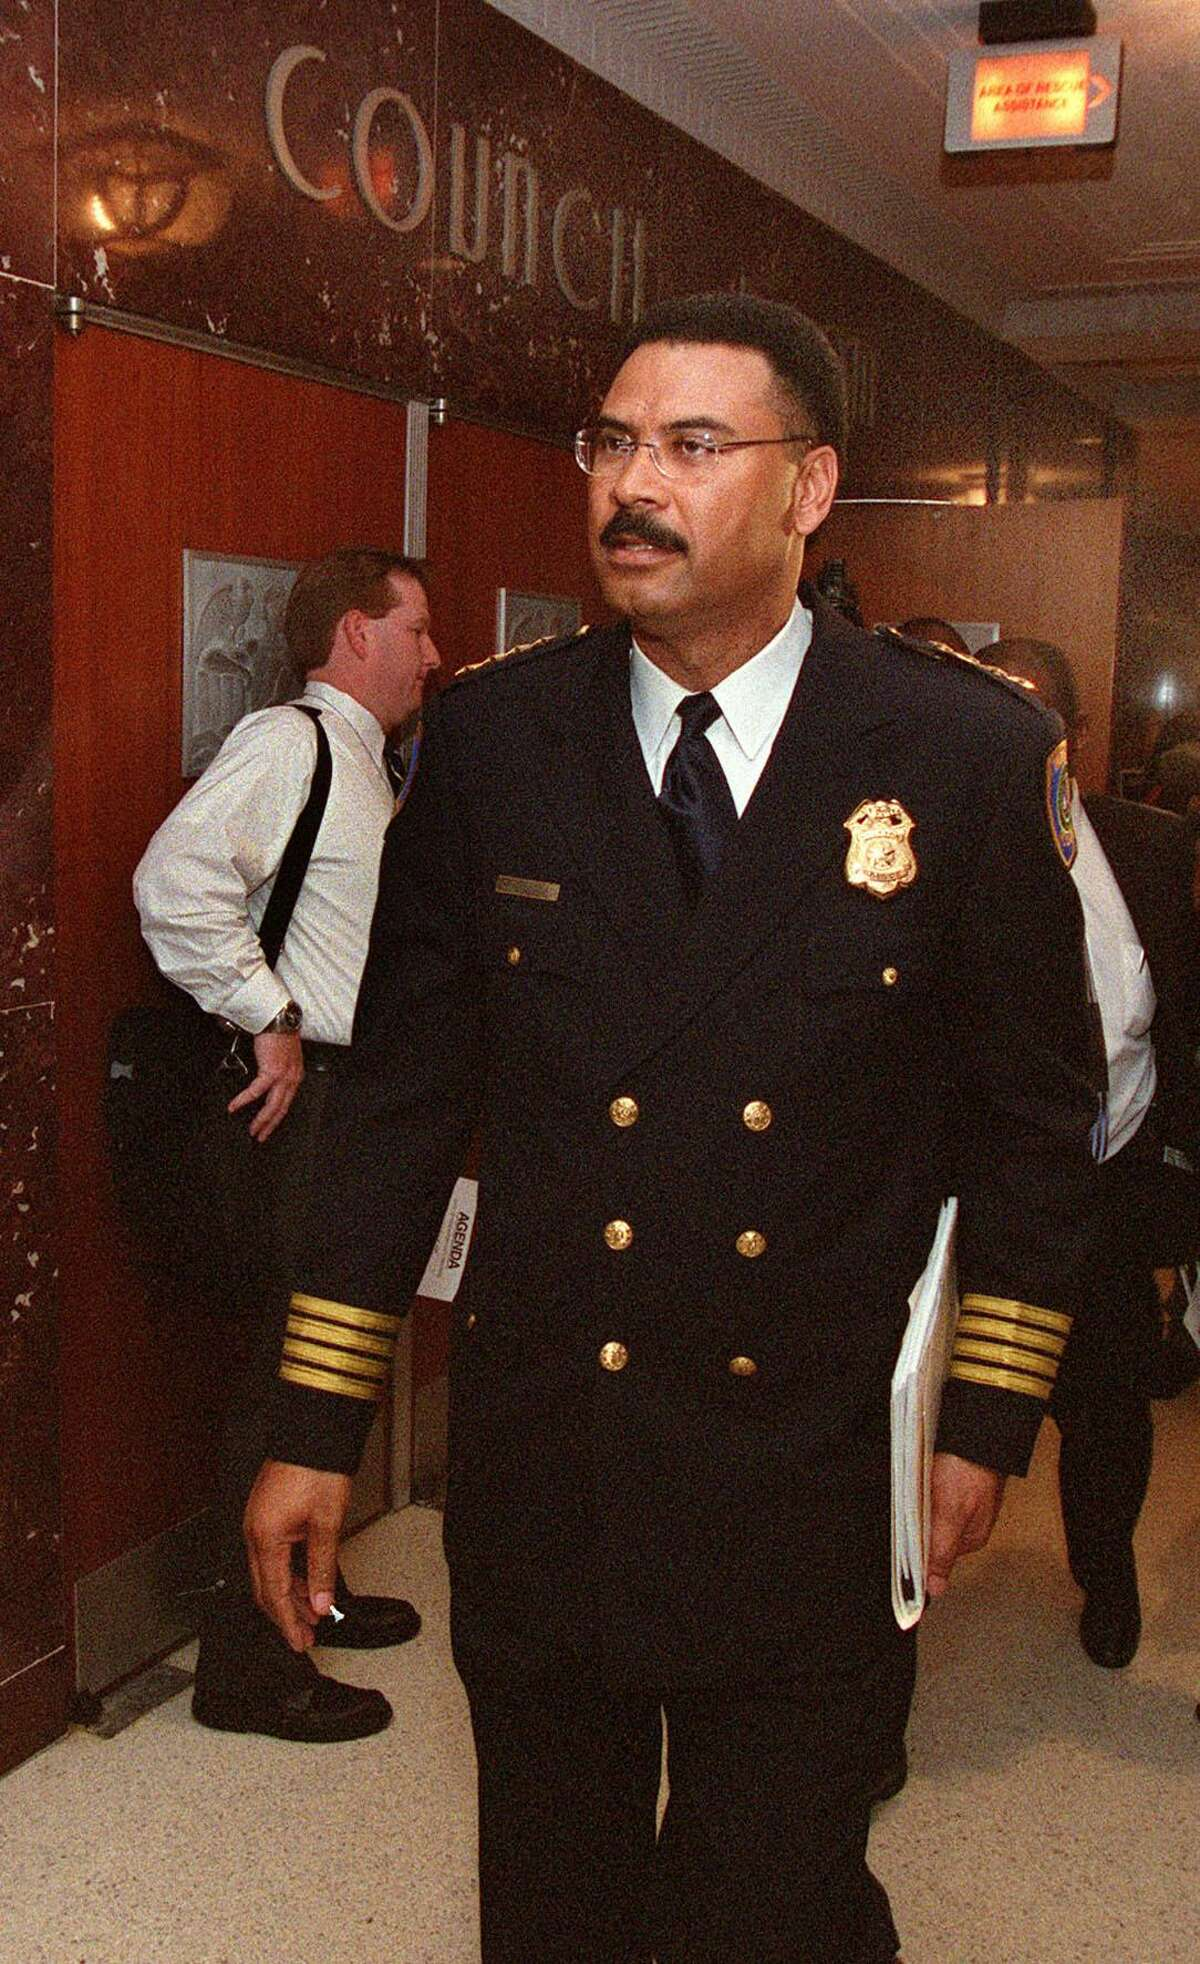 Houston Police Chief C.O. Bradford goes before the city council on June 25, 2003 to submit plans to rehabilitate the city's troubled crime lab.